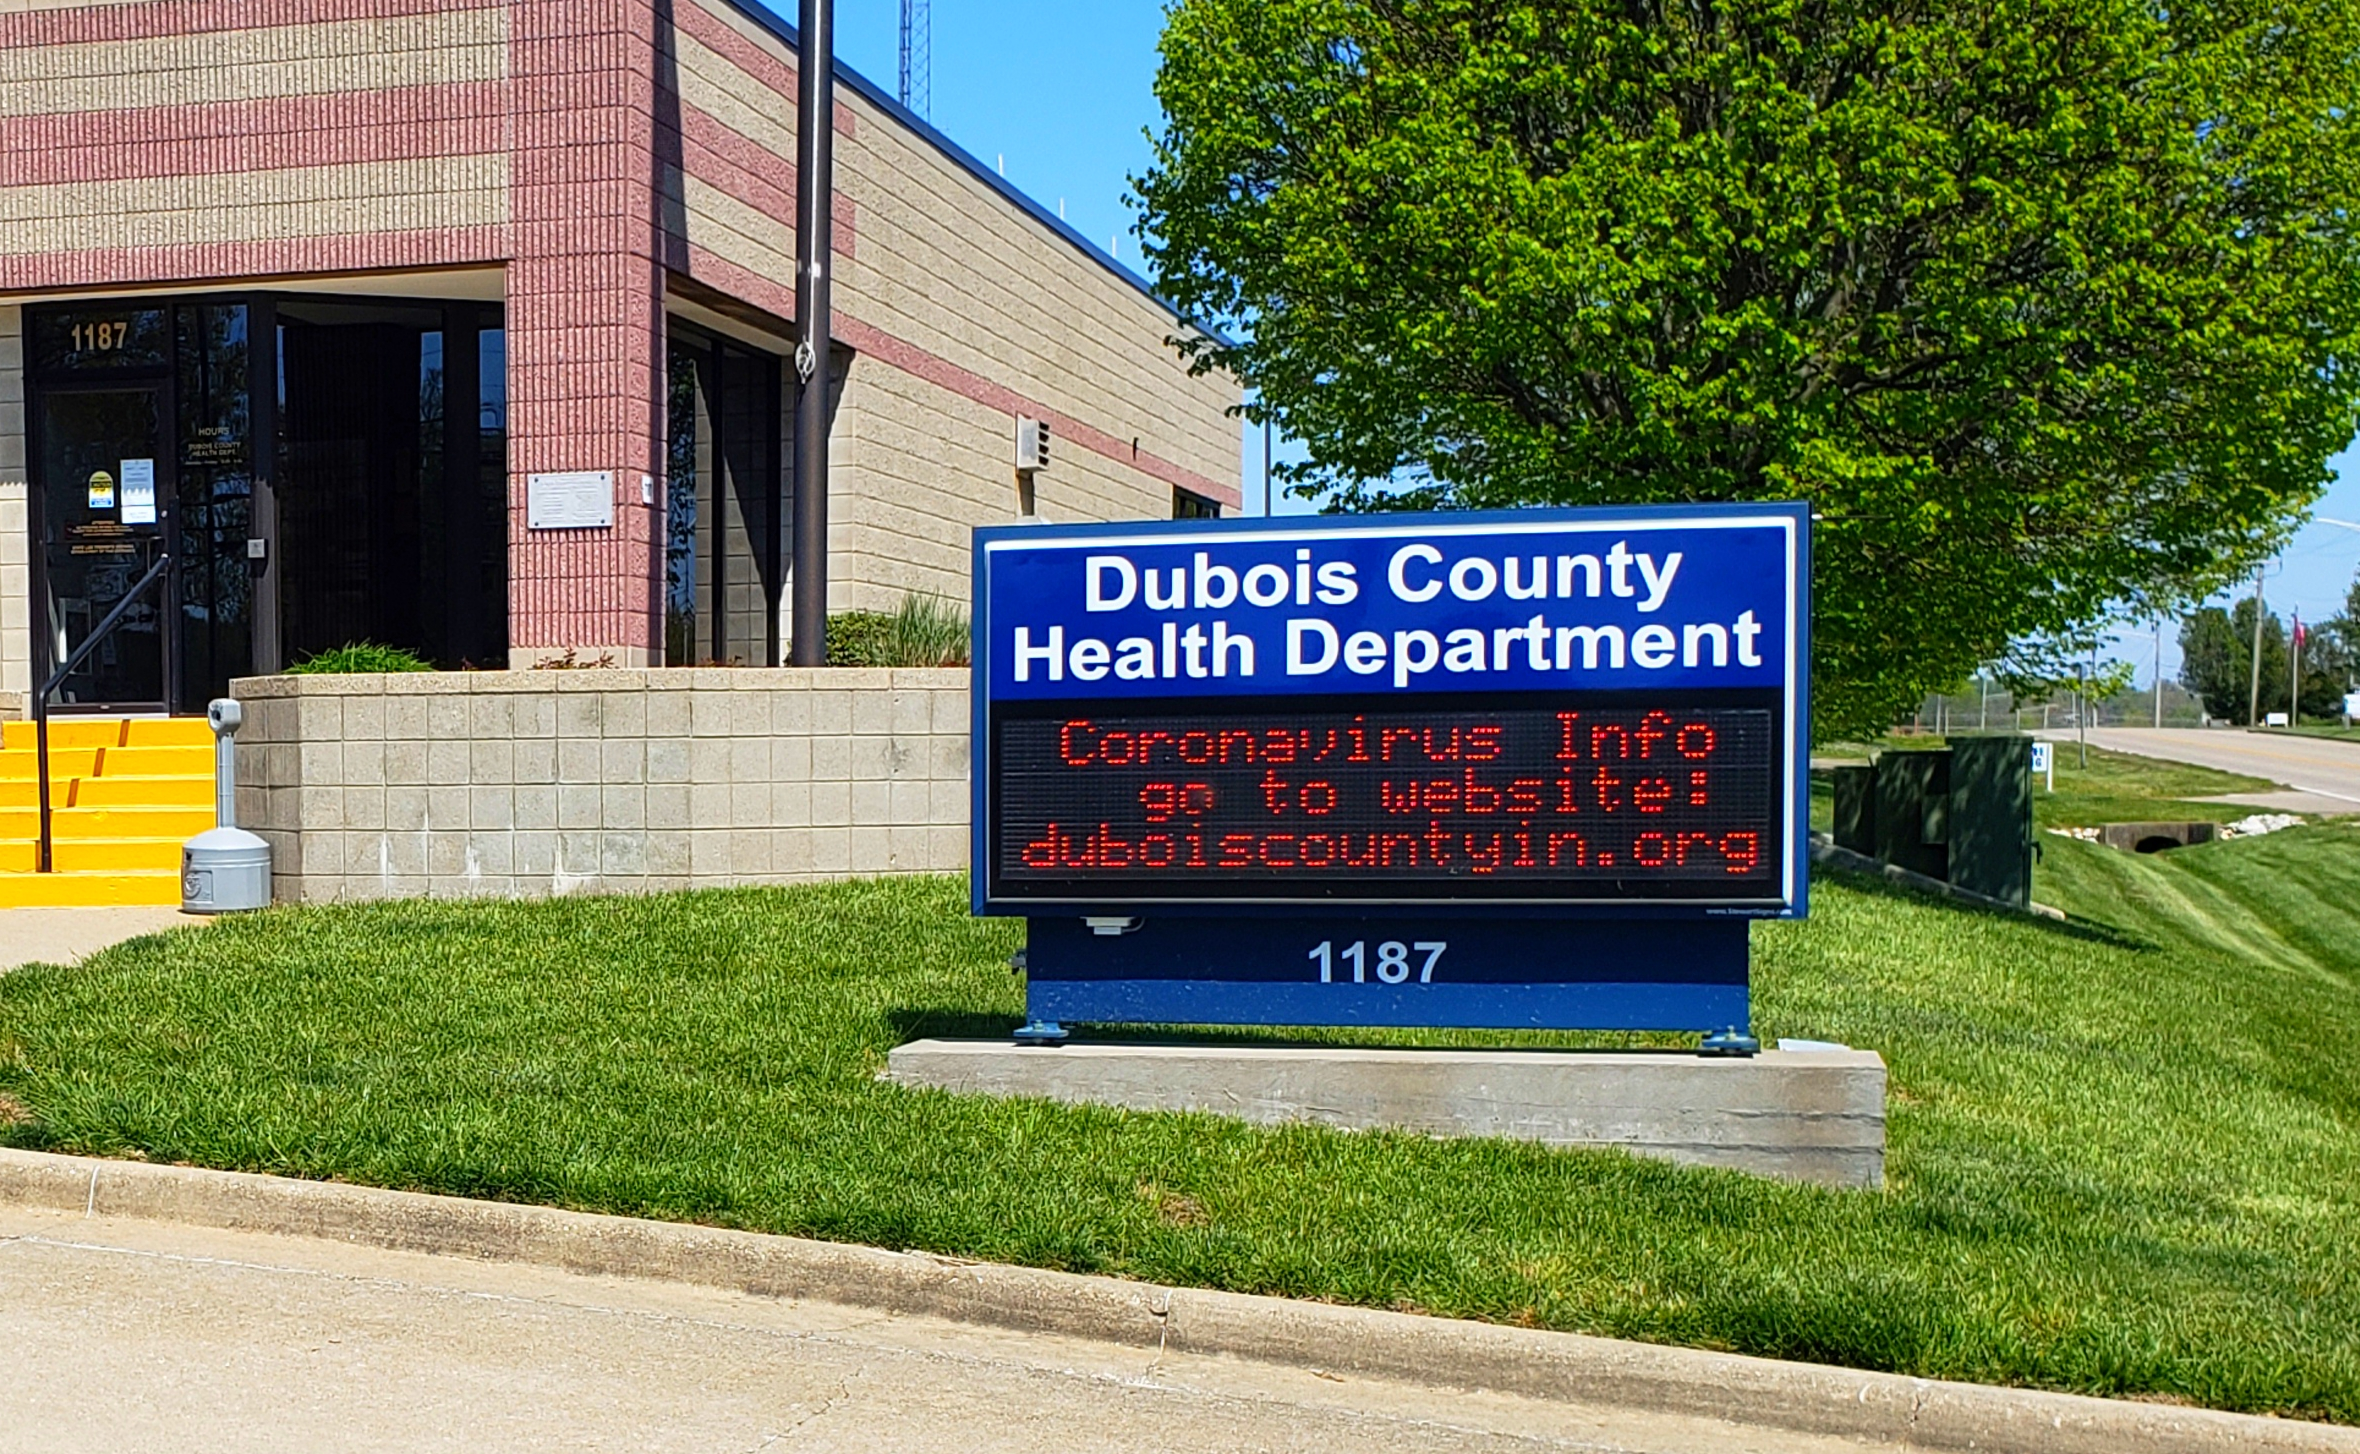 Dubois County Health Department Discusses CDC Revisions to COVID-19 Guidelines